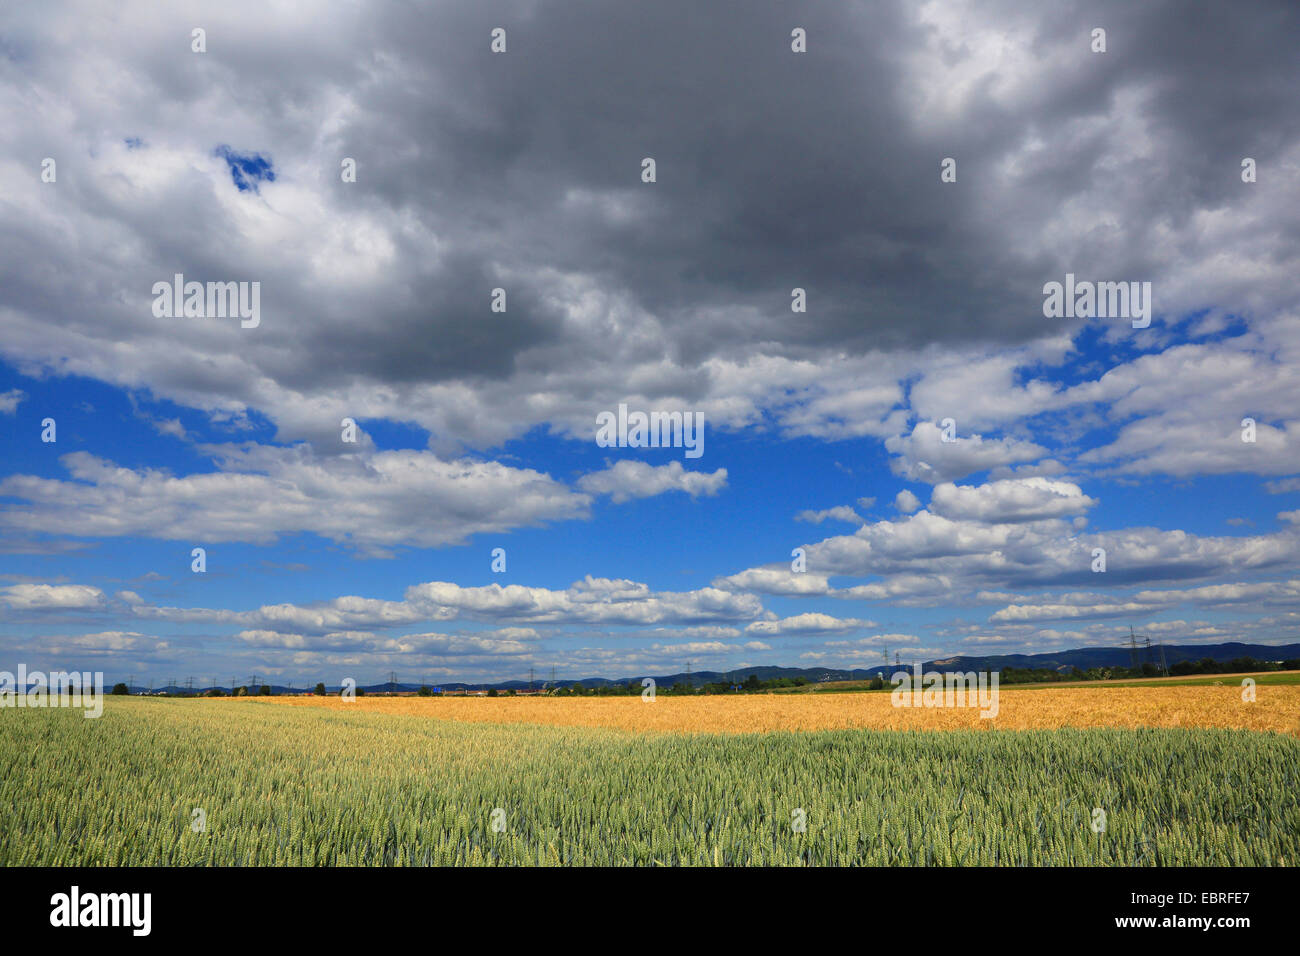 wheatfield with clouds in summer, Germany - Stock Image